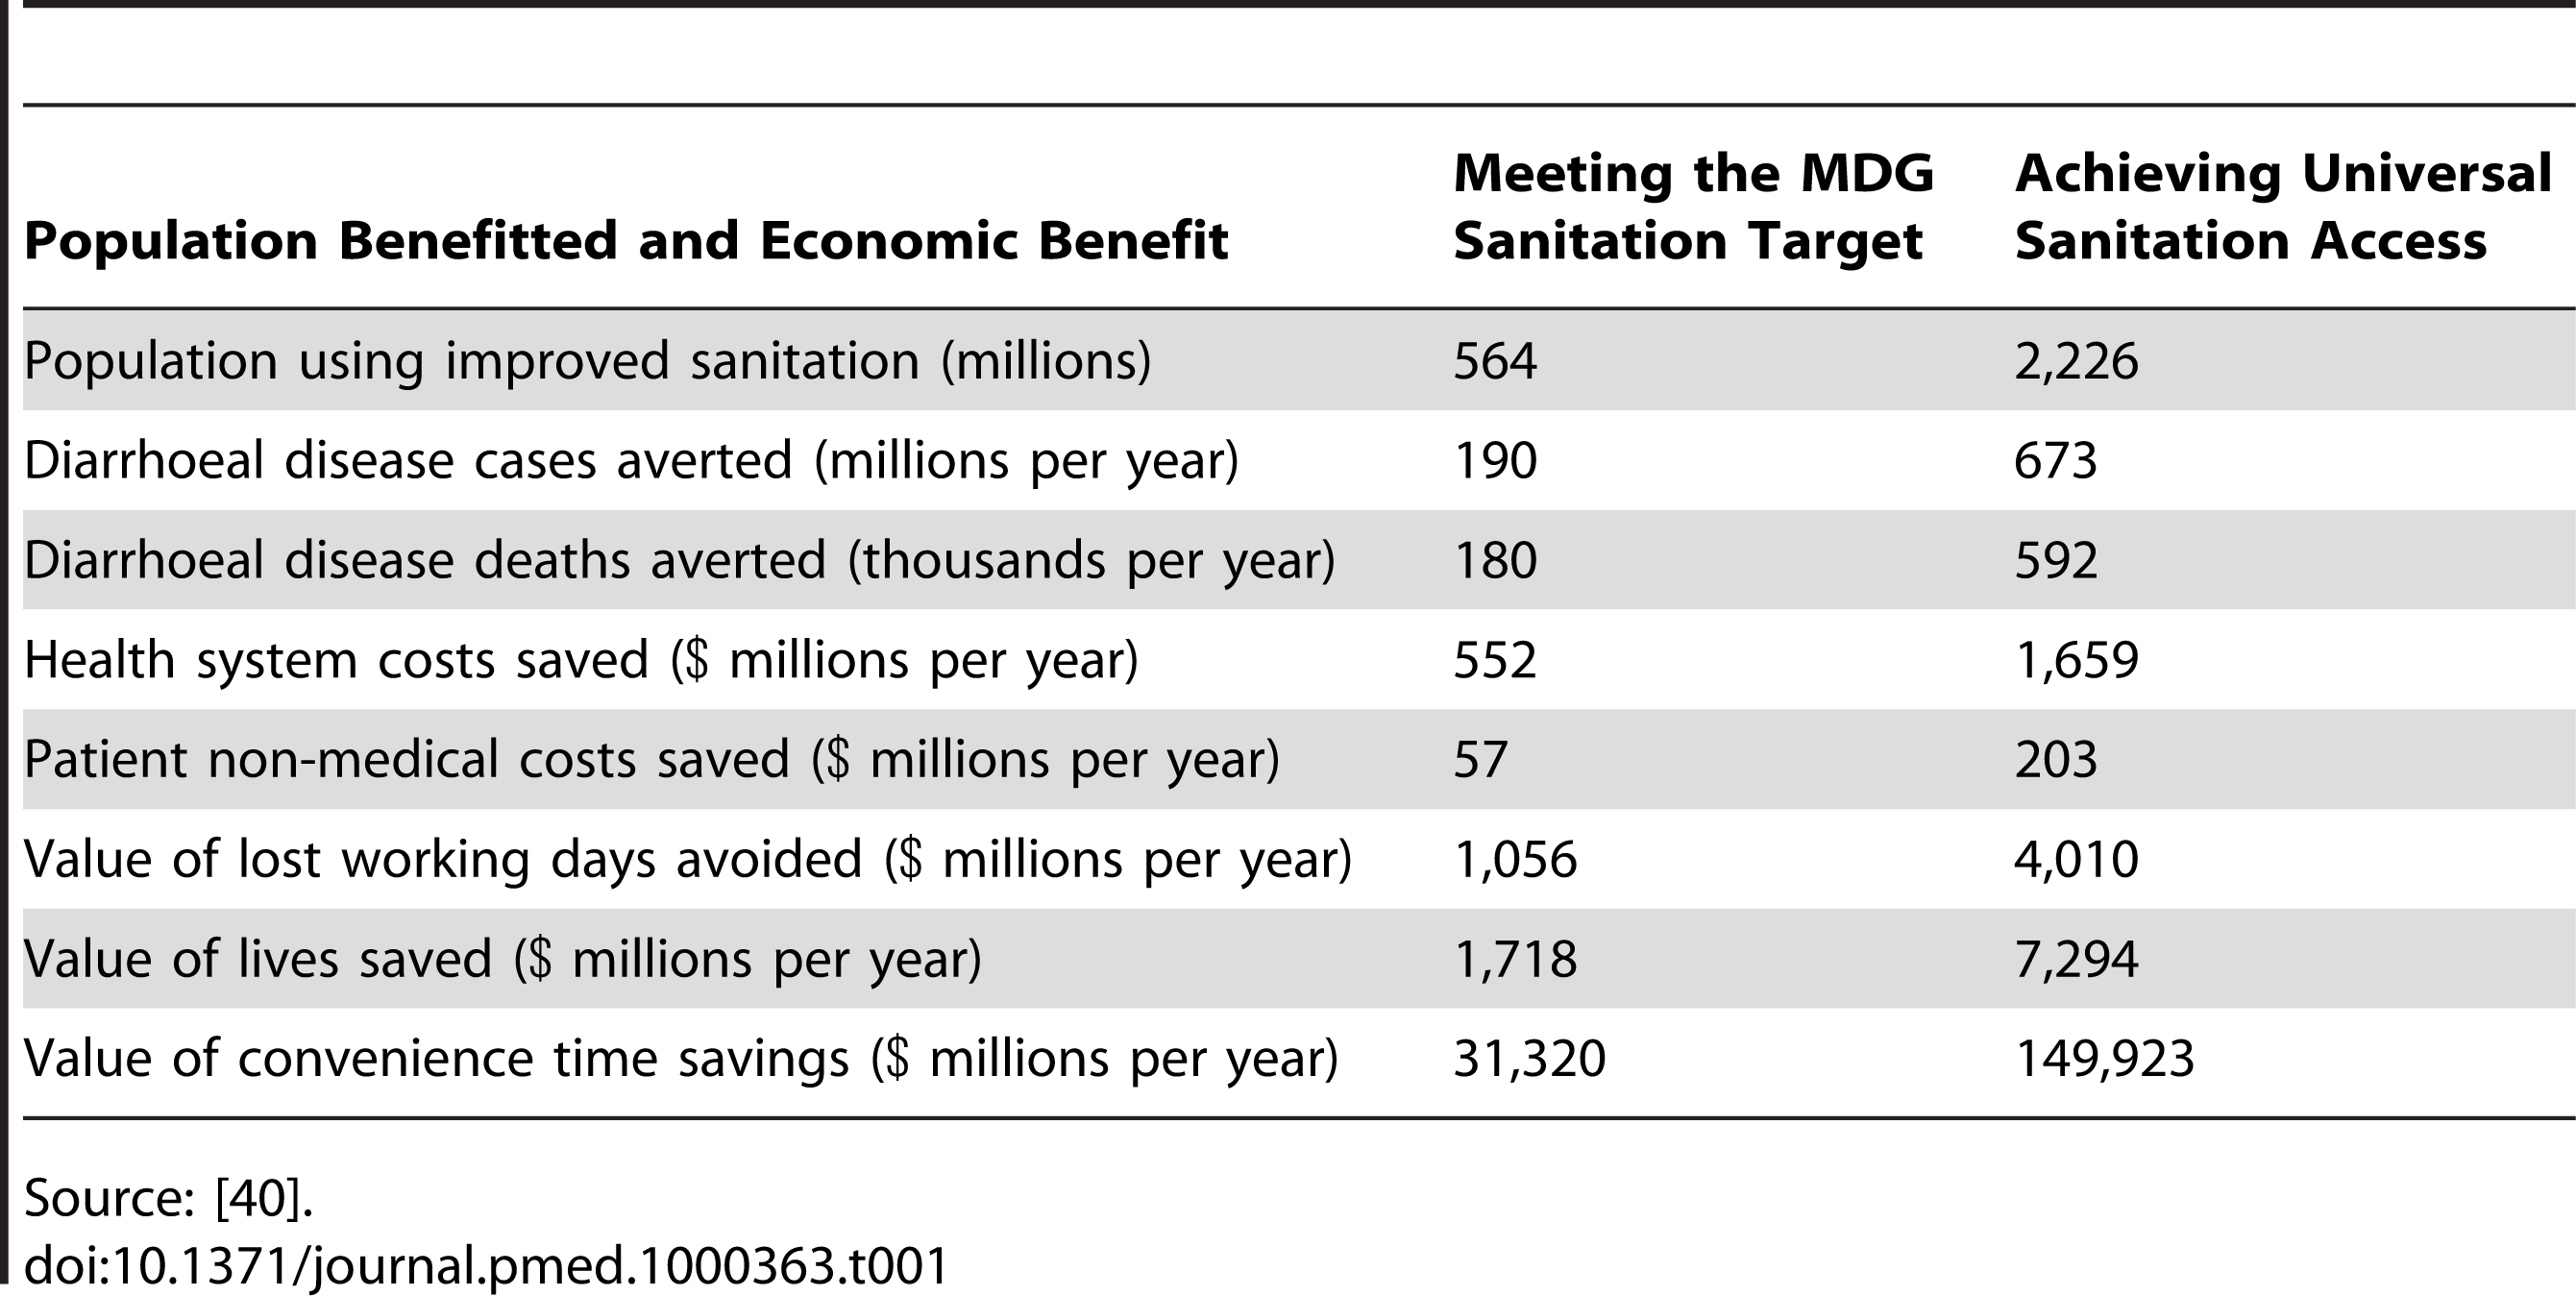 Economic benefits resulting from meeting the MDG sanitation target and from achieving universal sanitation access.